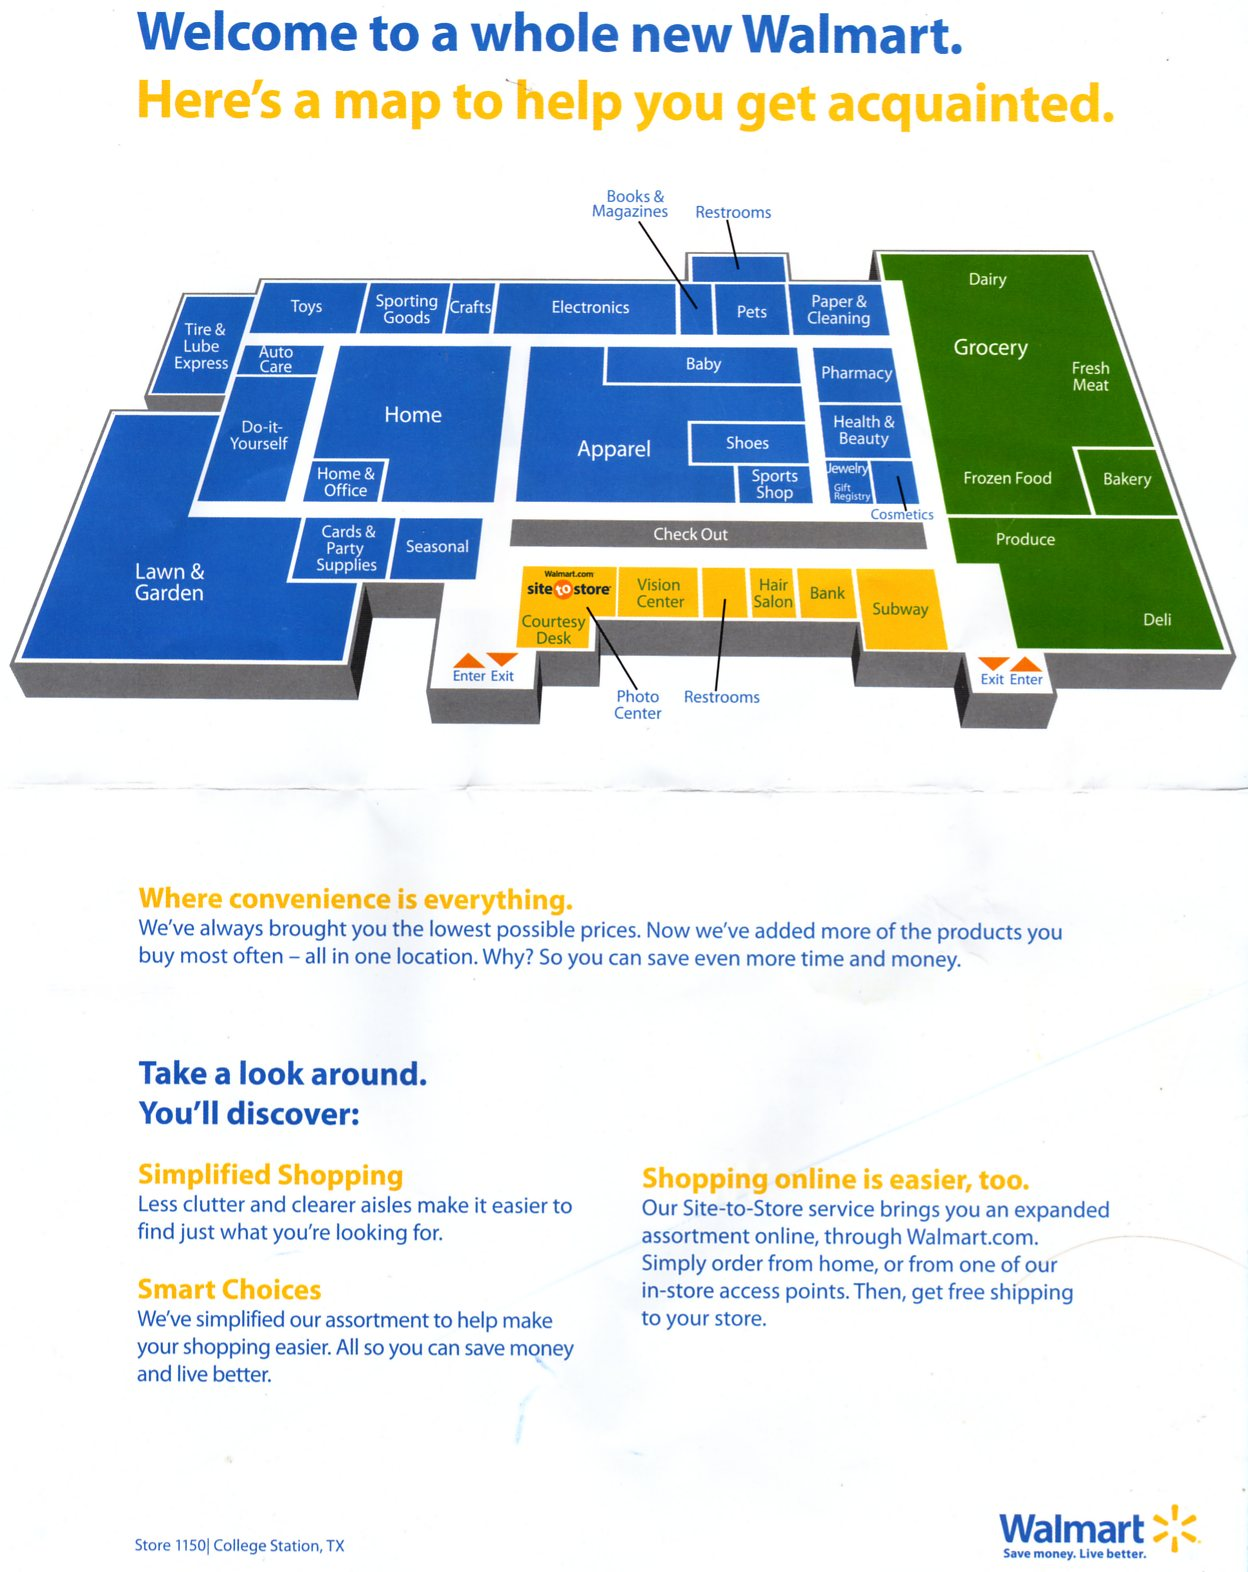 walmart vs meijer Wal-mart corporation wal-mart stores, inc operates retail stores in various formats around the world wal-mart is committed to growing by improving the standard of living for our customers throughout the world.